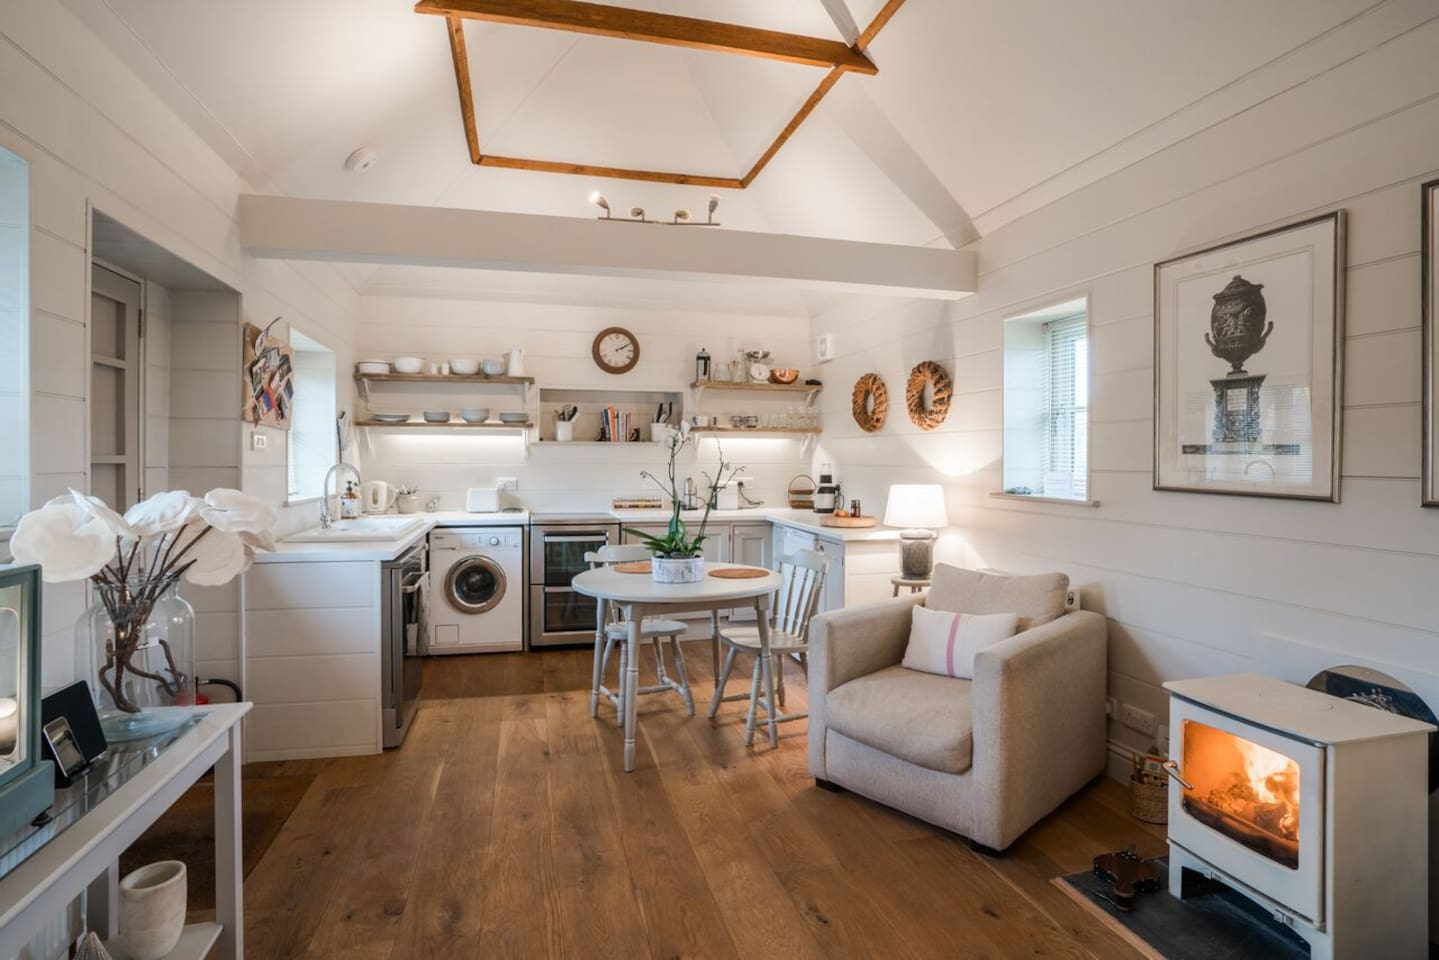 Fully equipped kitchen and cosy woodburner